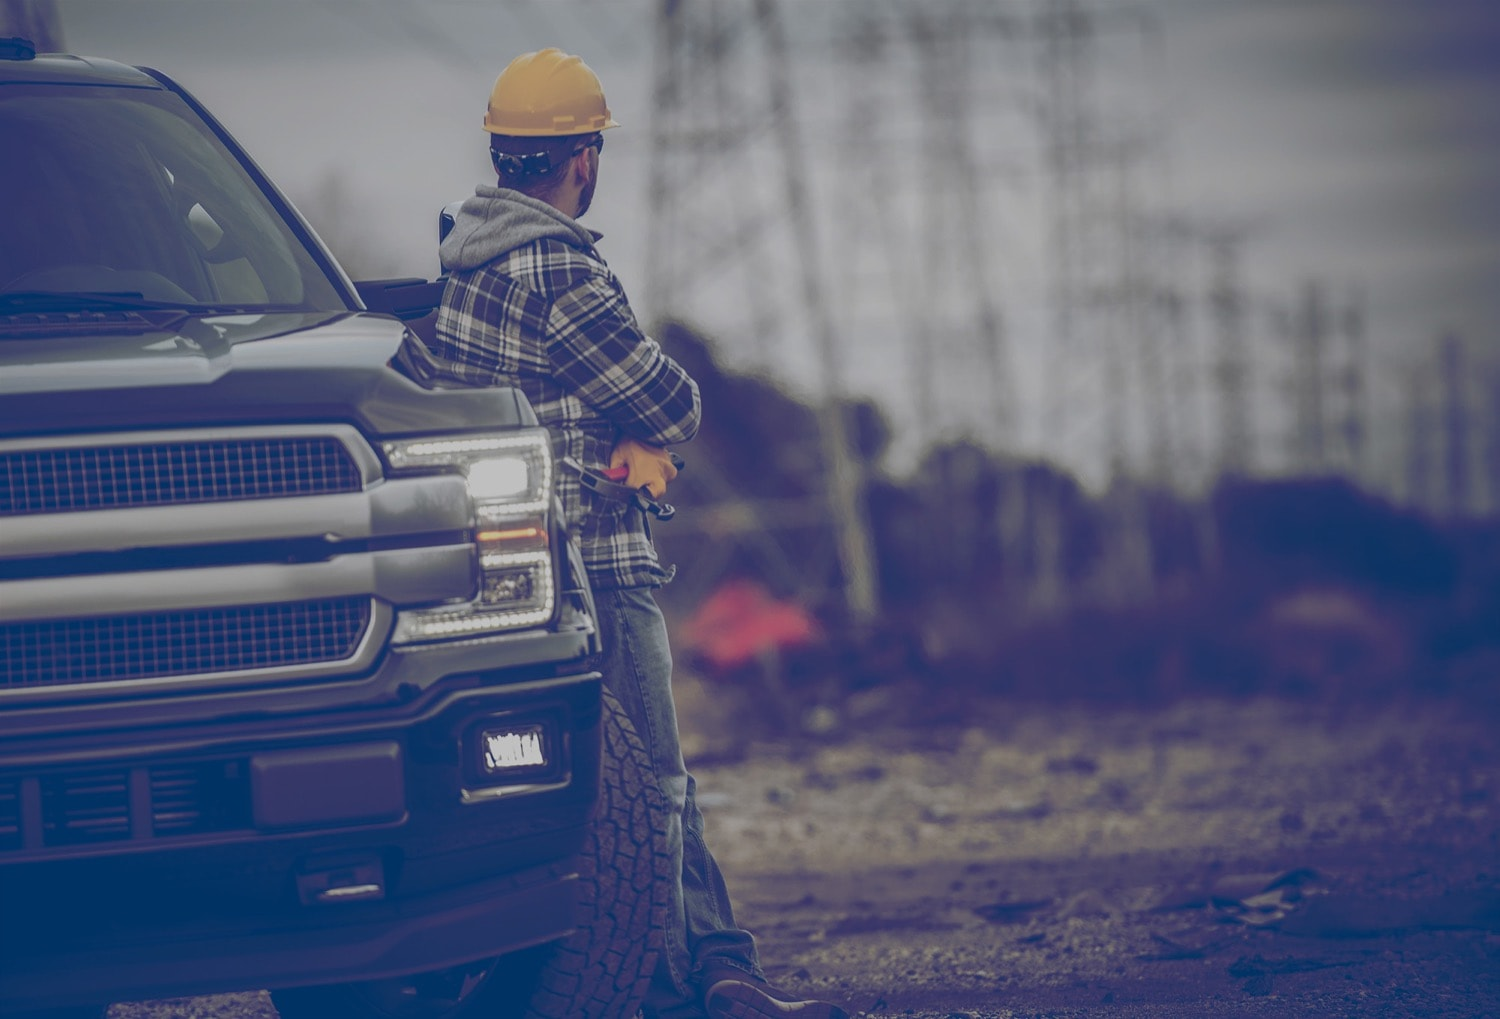 Construction worker standing beside a pickup truck holding a hammer and looking at power lines.